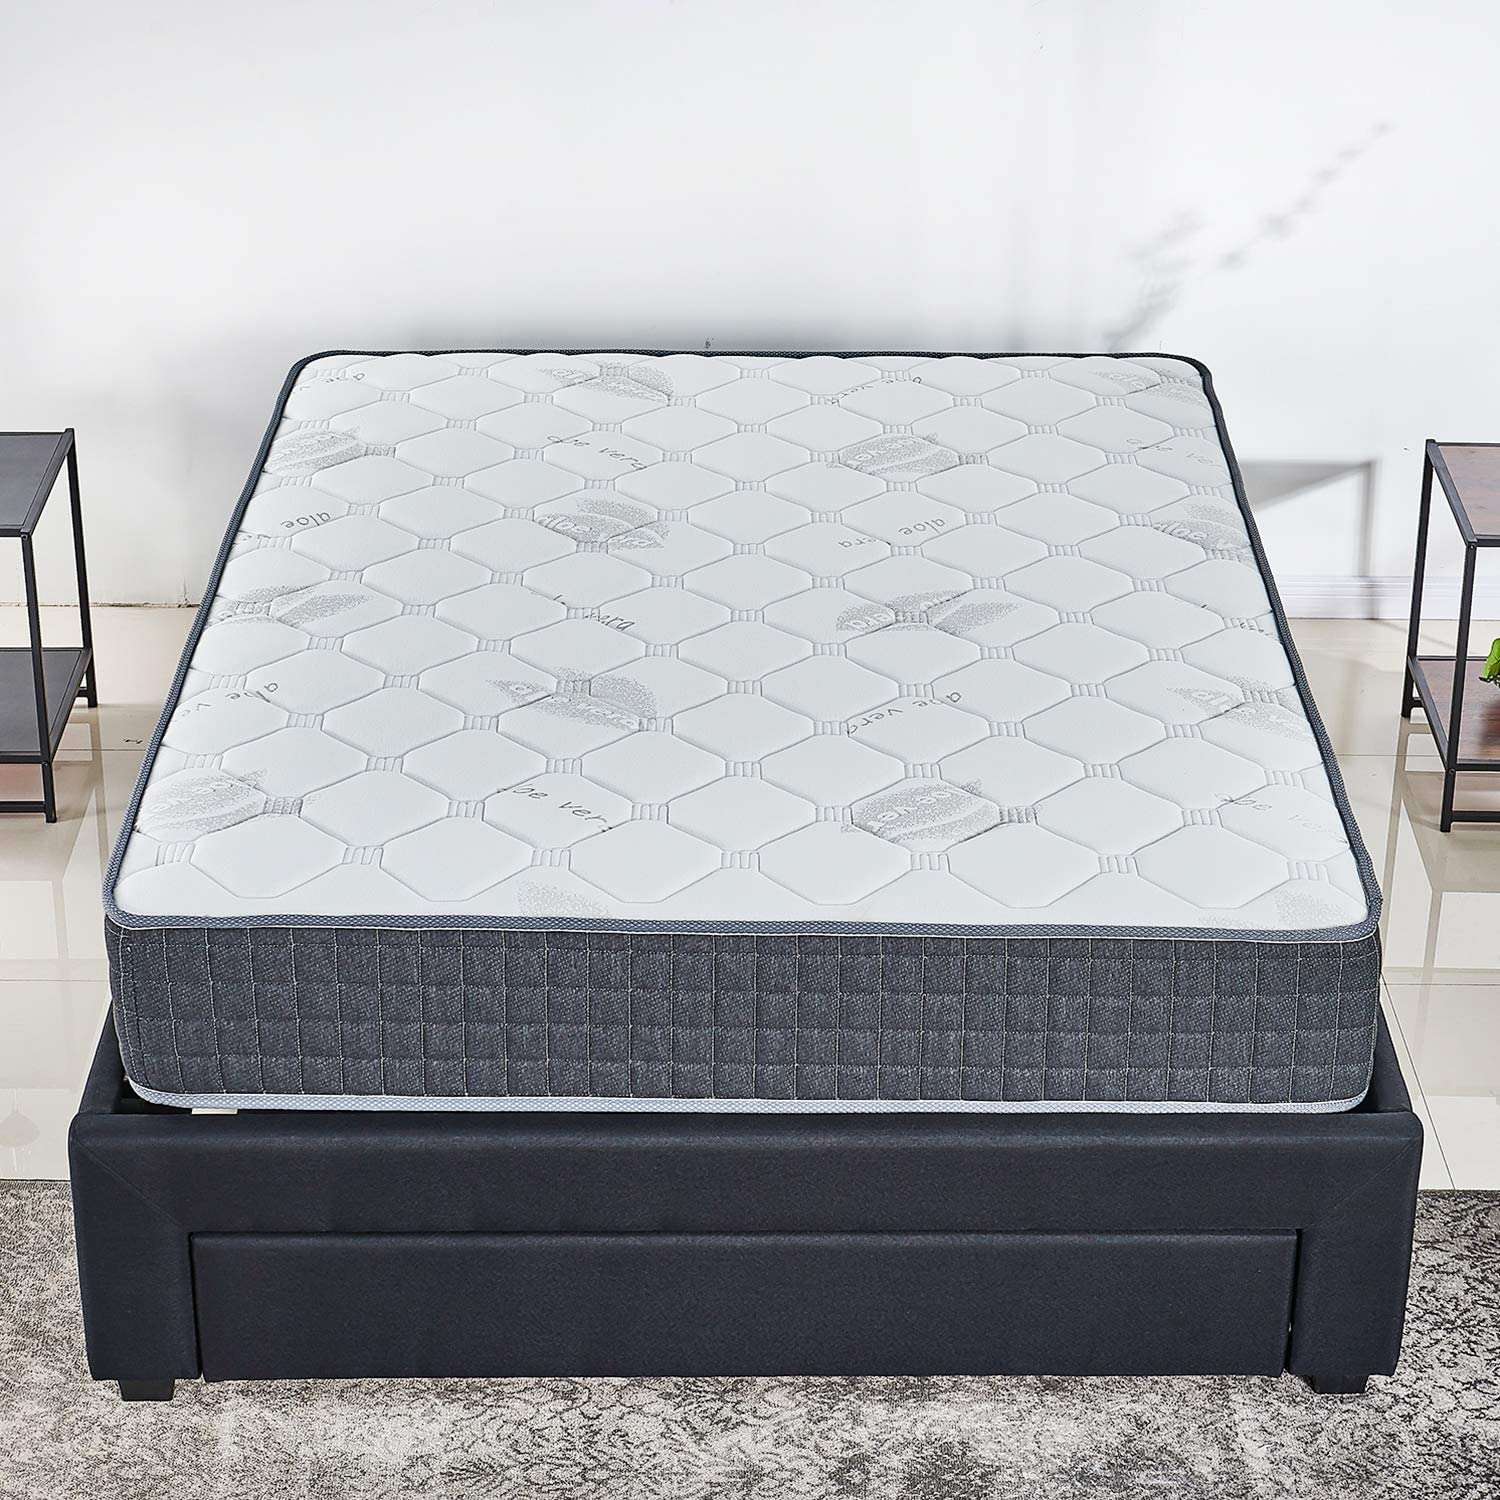 10 inch Latex Hybrid Coil Spring Mattress Cooling Bed in a Box-Pocket Innerspring Mattress CertiPUR-US 20Years Warranty Firm But Comfortable Twin